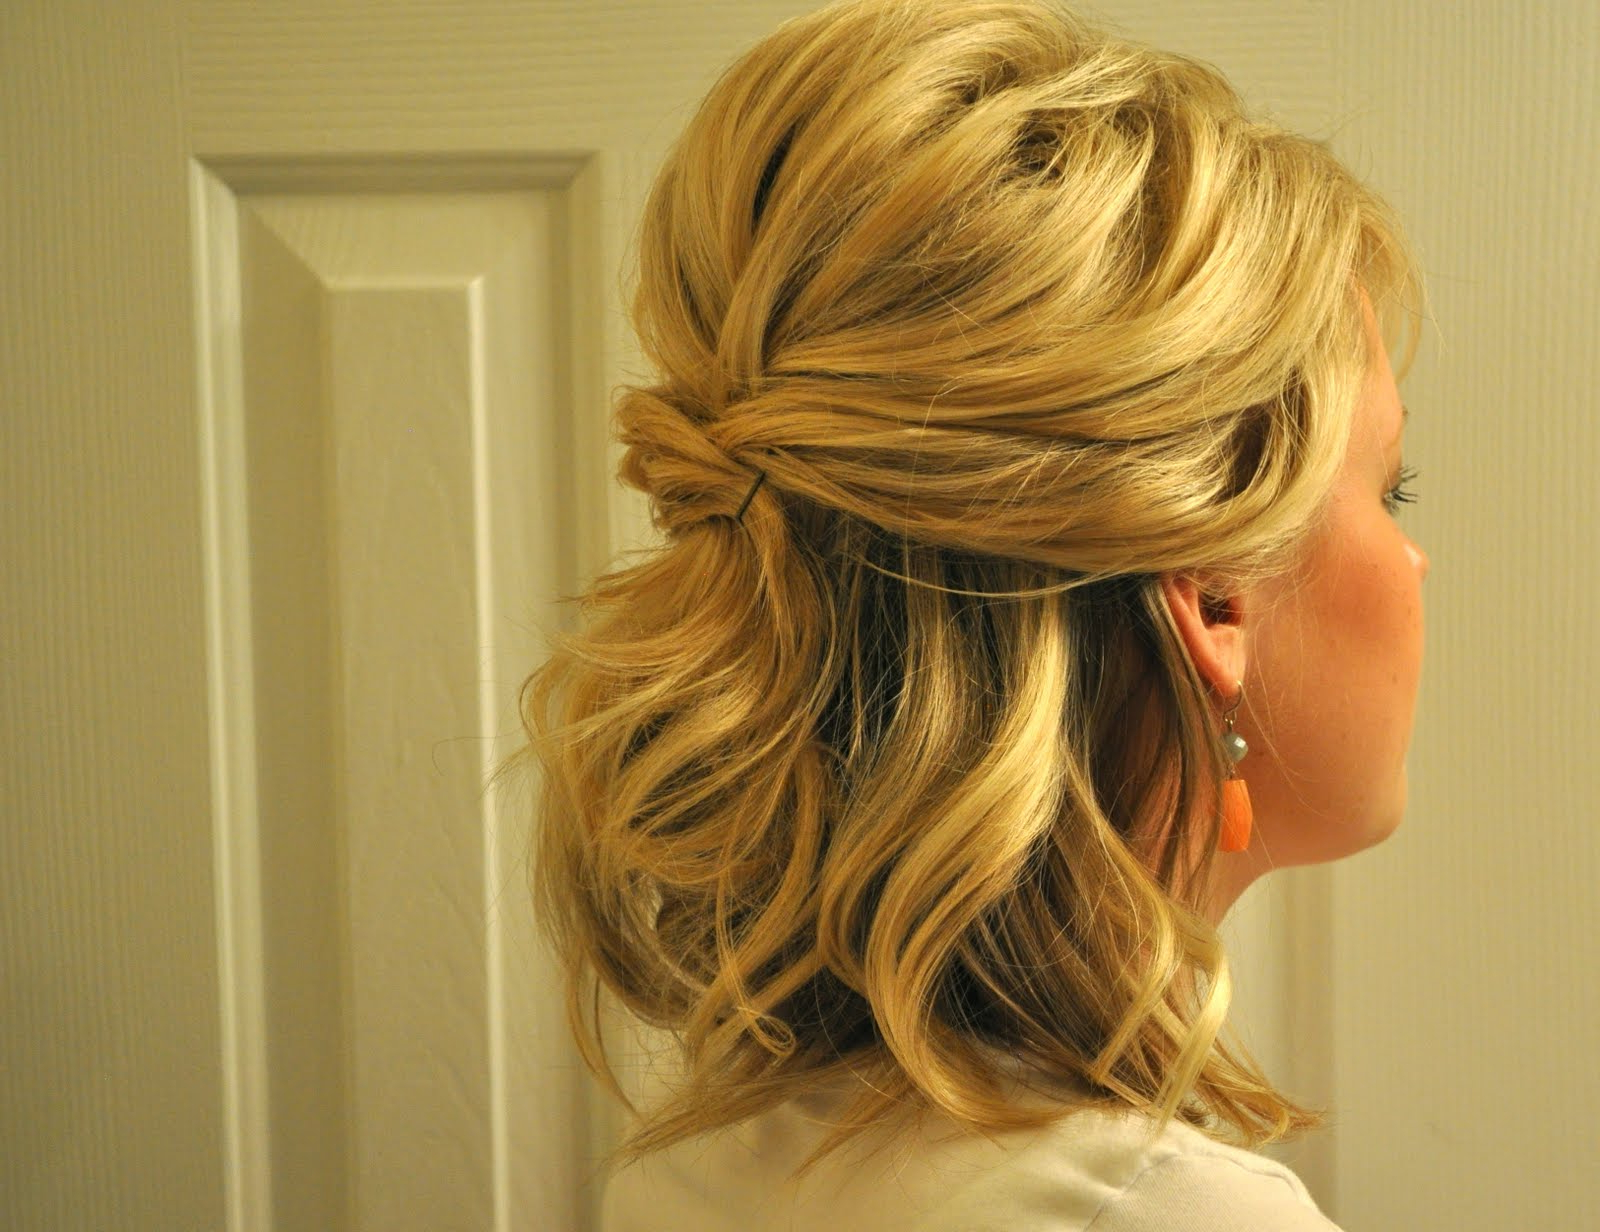 Half Up Hairstyles For Medium Length Hair (View 7 of 20)